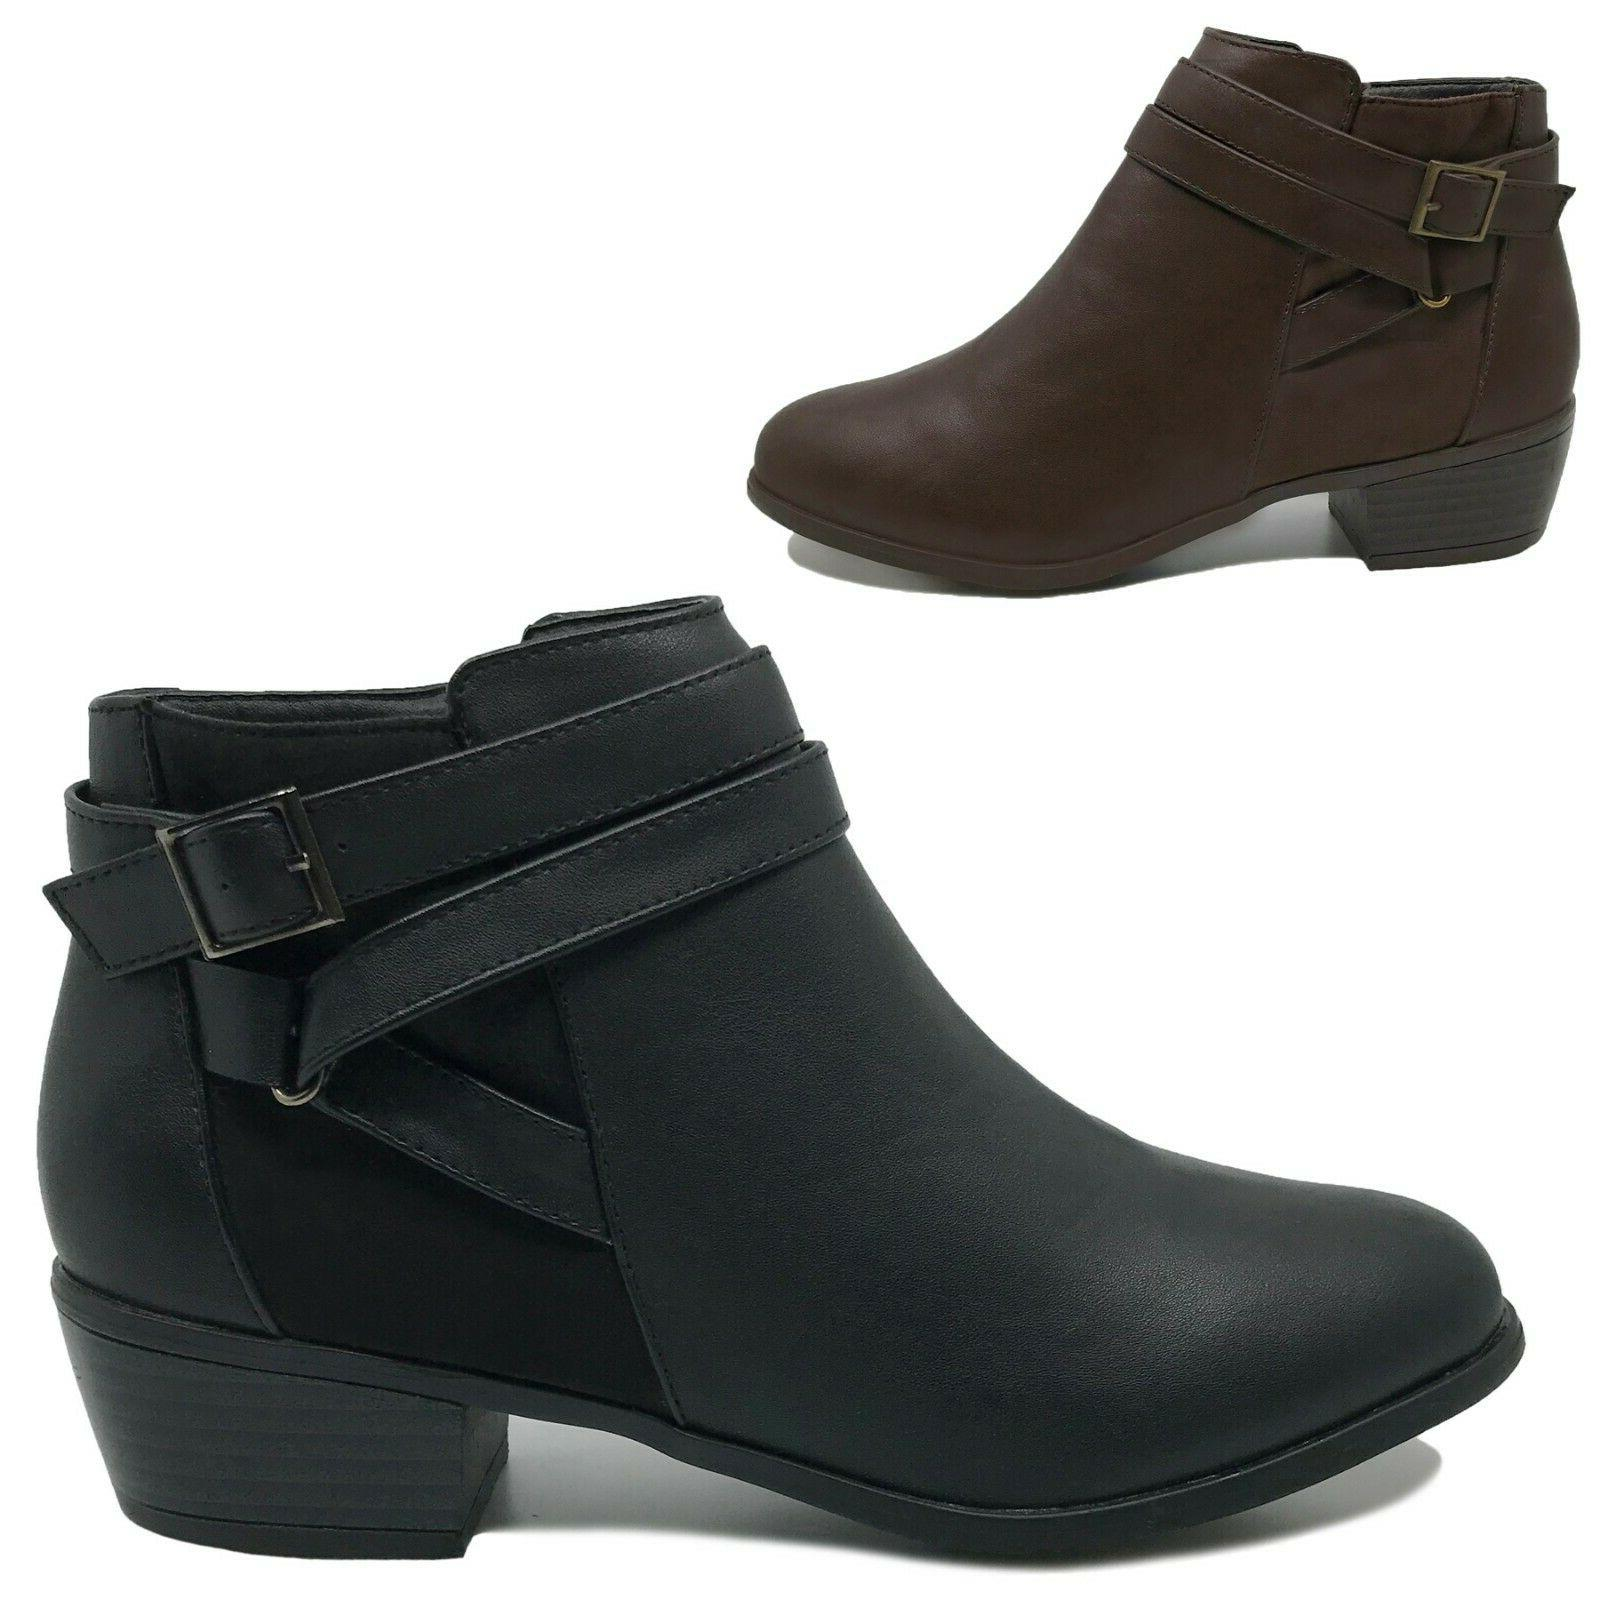 New Boots Low Short Black Brown to 11